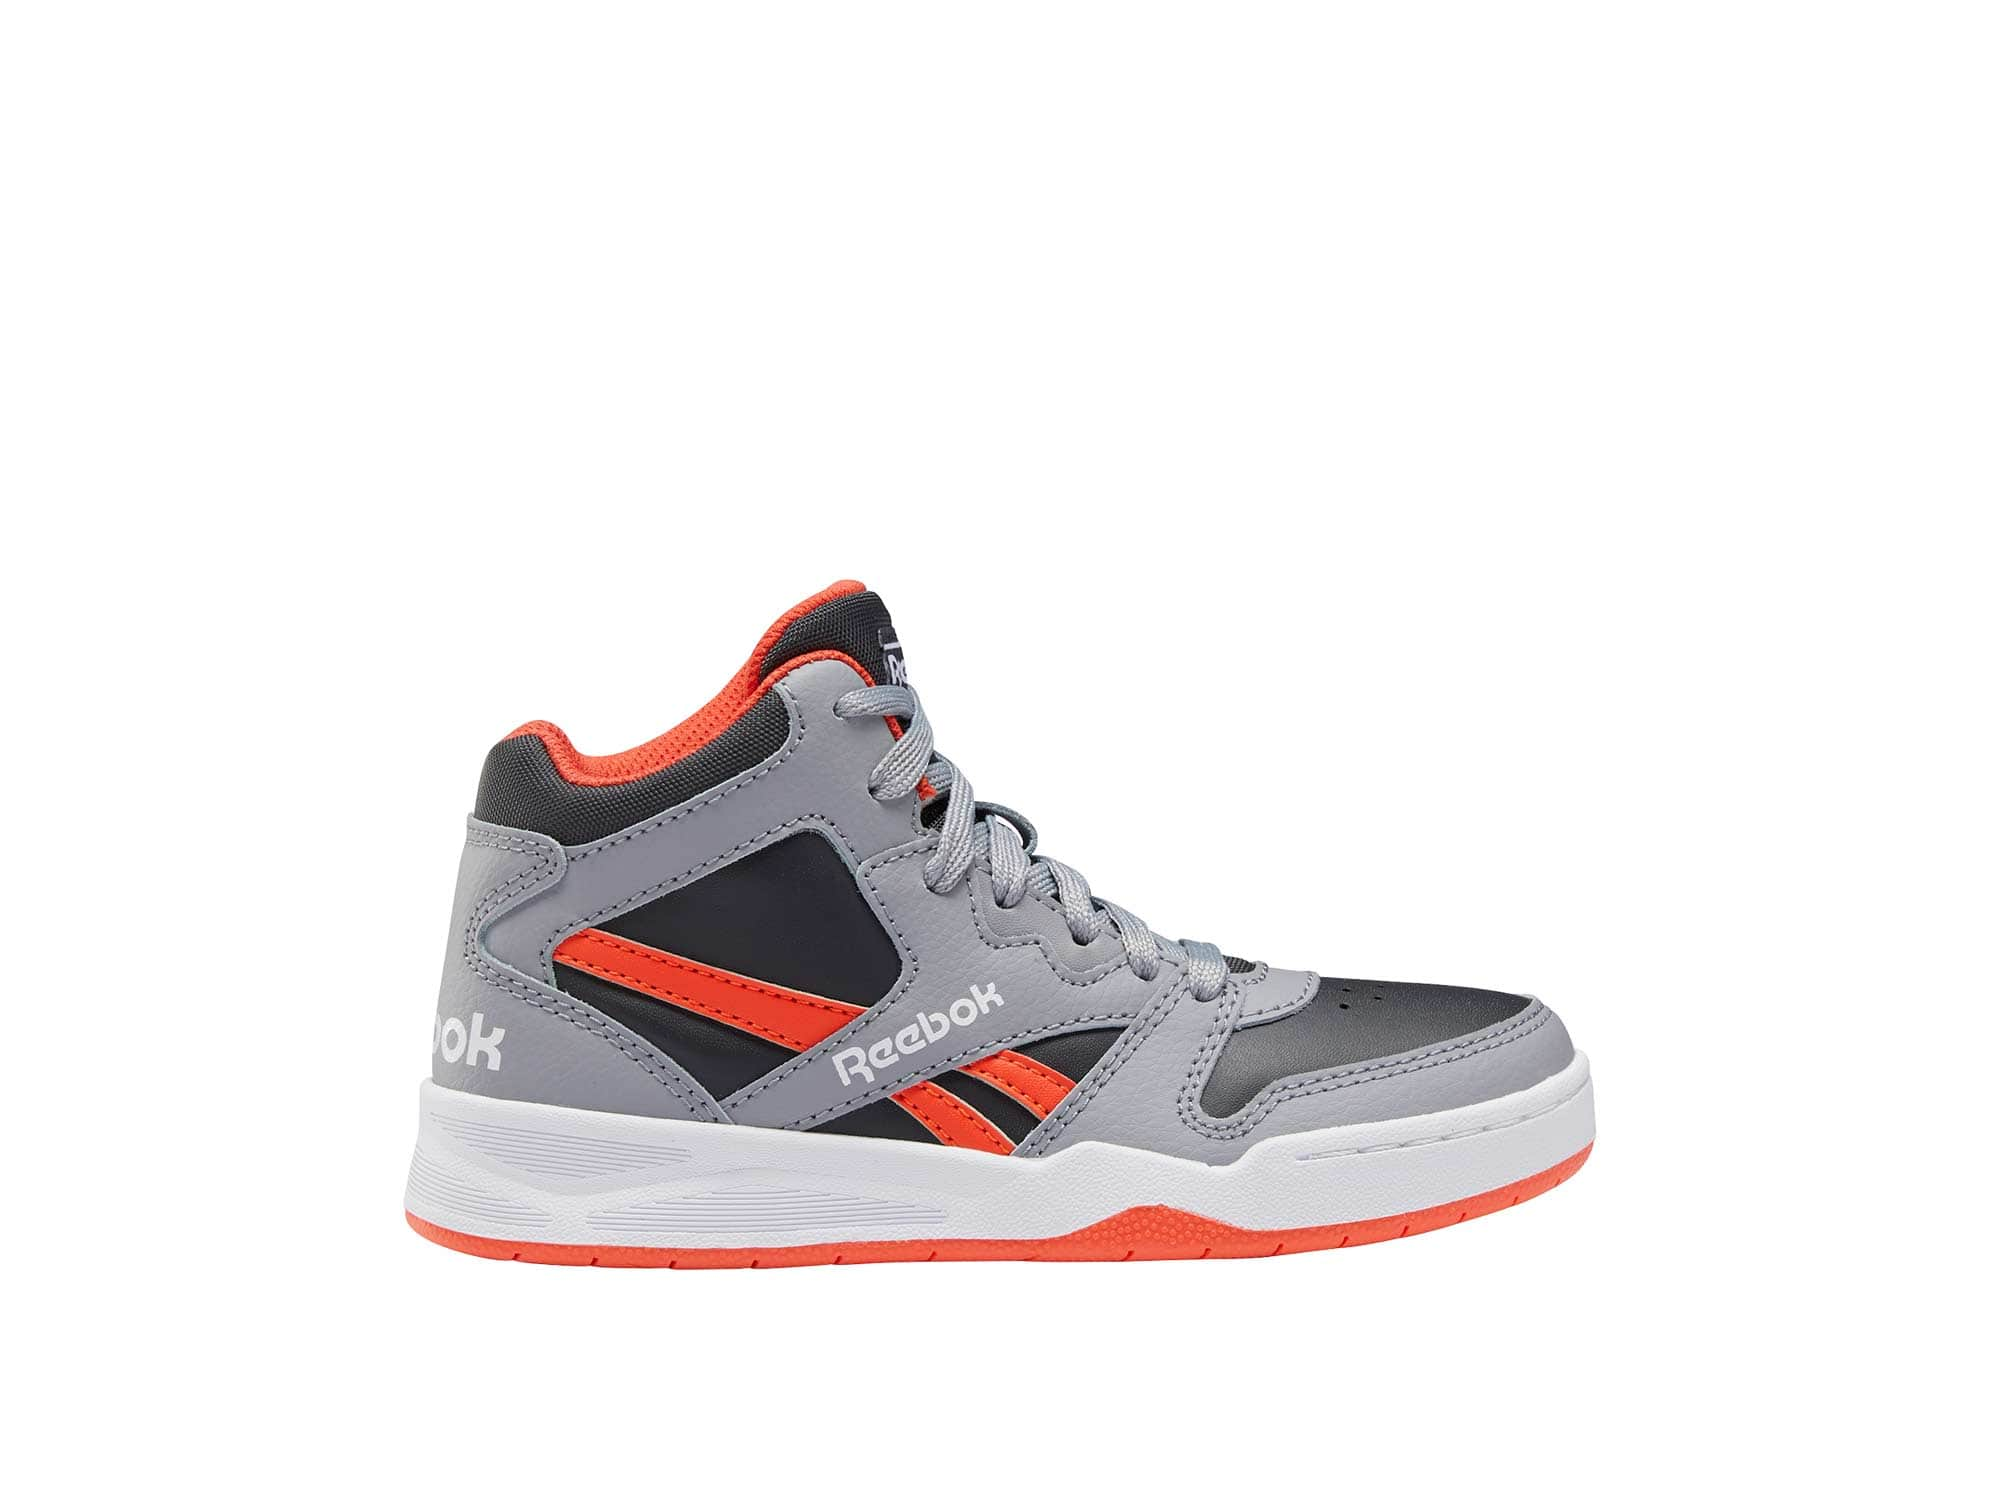 Zapatilla Reebok Bb4500 Court Junior Gris